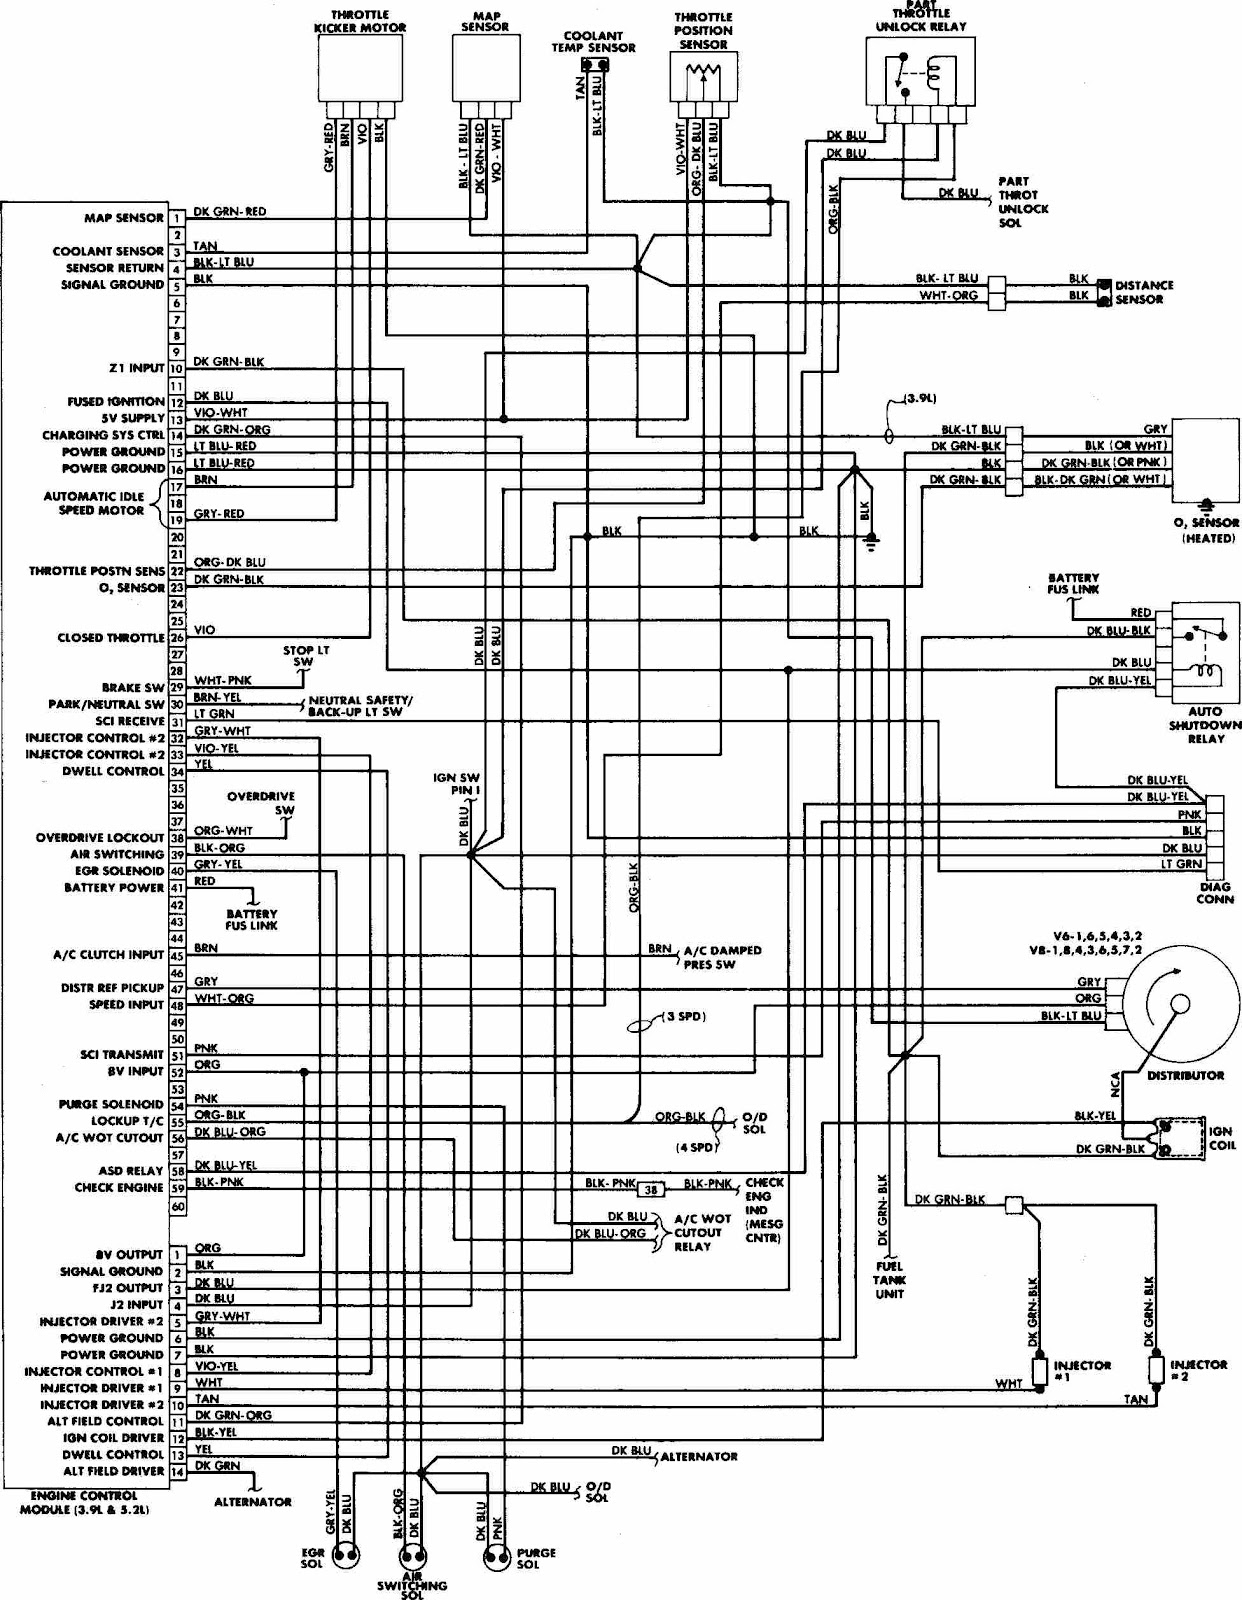 Ford F150 Engine Wiring Harness Diagram from 2.bp.blogspot.com